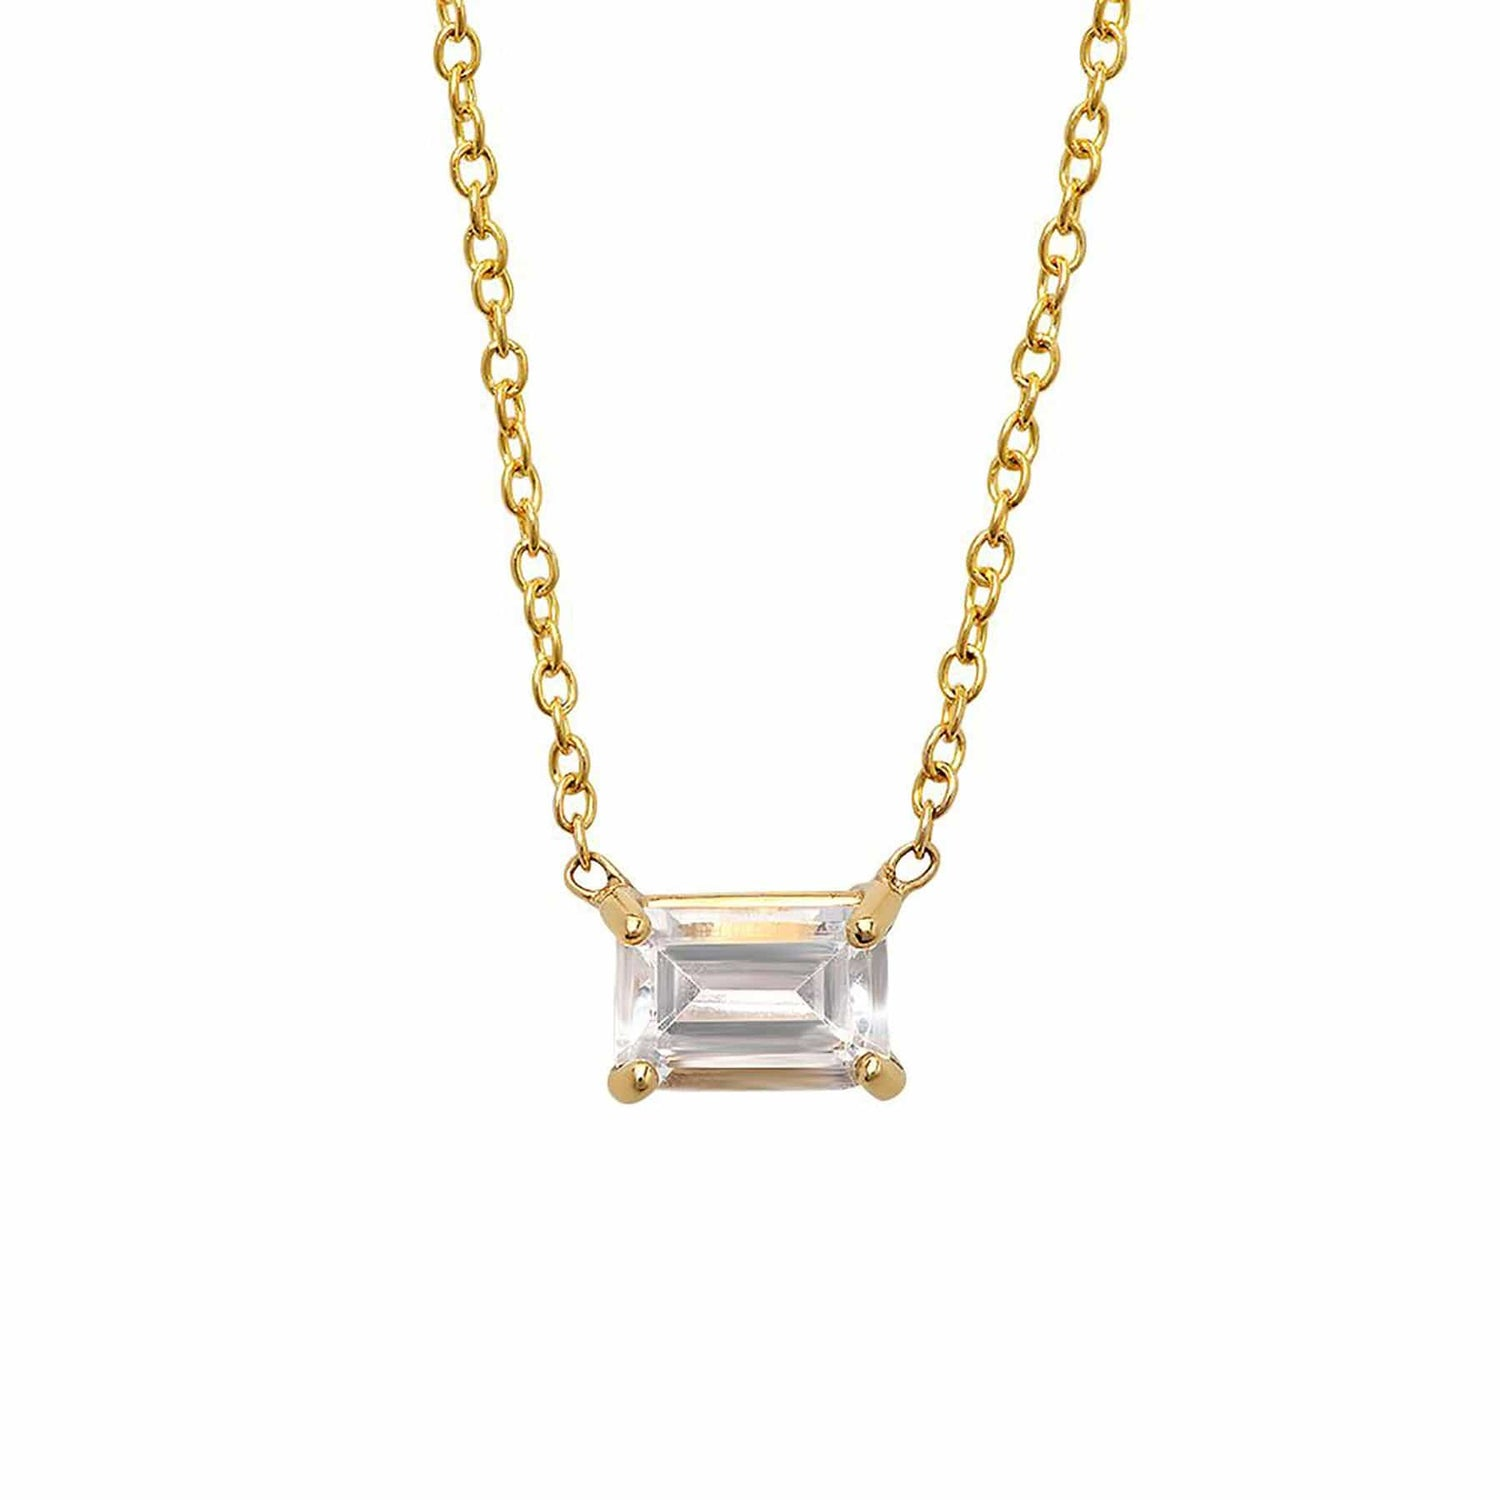 Emerald Cut White Topaz Necklace